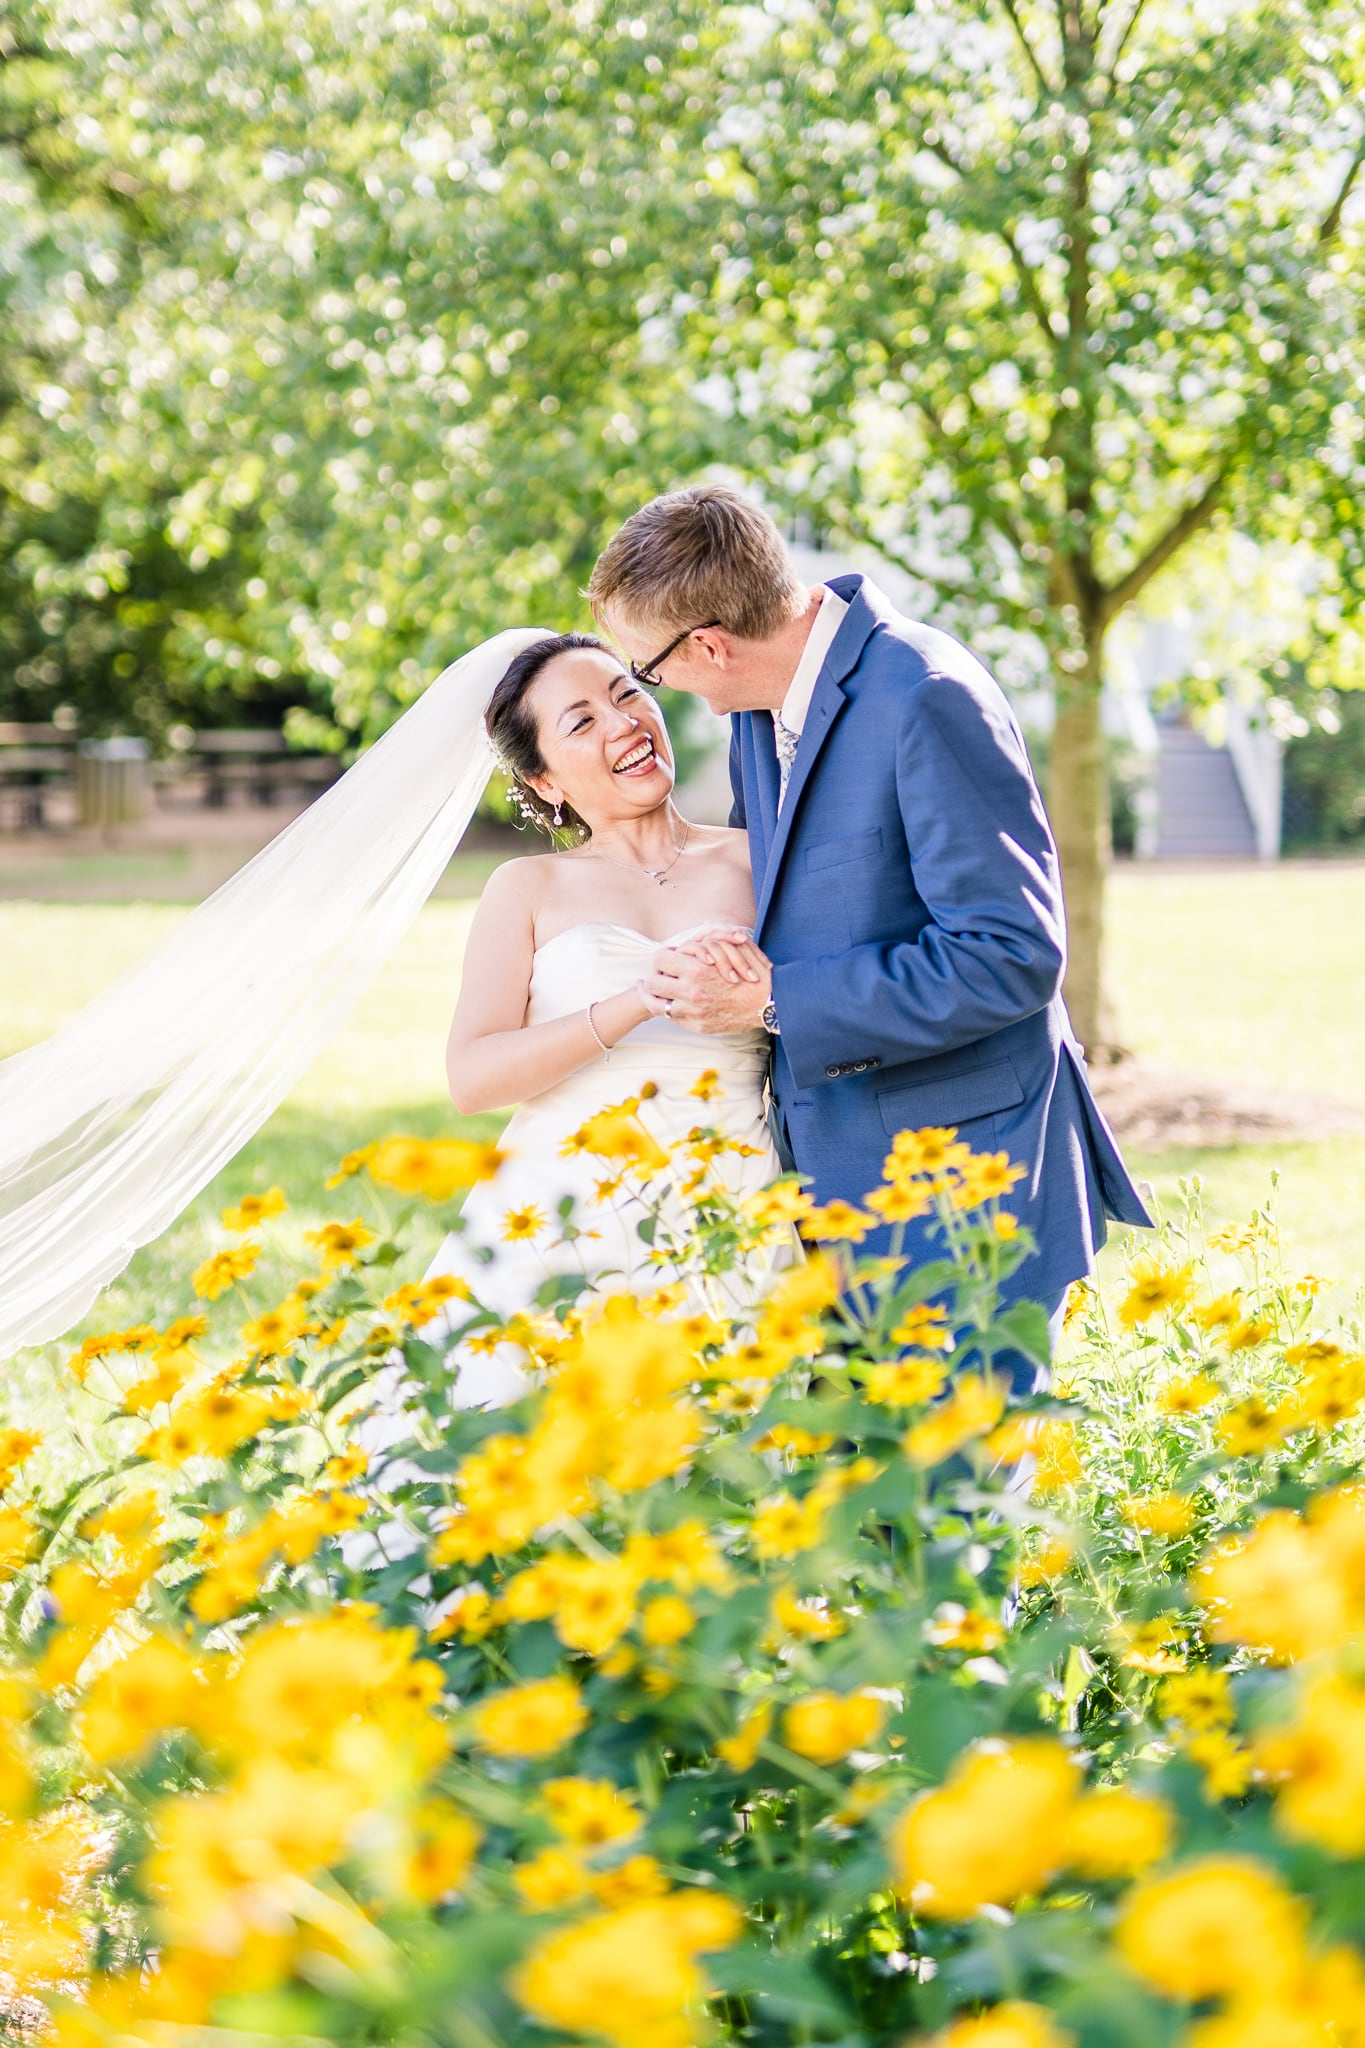 A Taiwanese bride laughs with her groom behind wildflowers across from the Vienna Presbyterian Church where they were married in Vienna, Northern Virginia